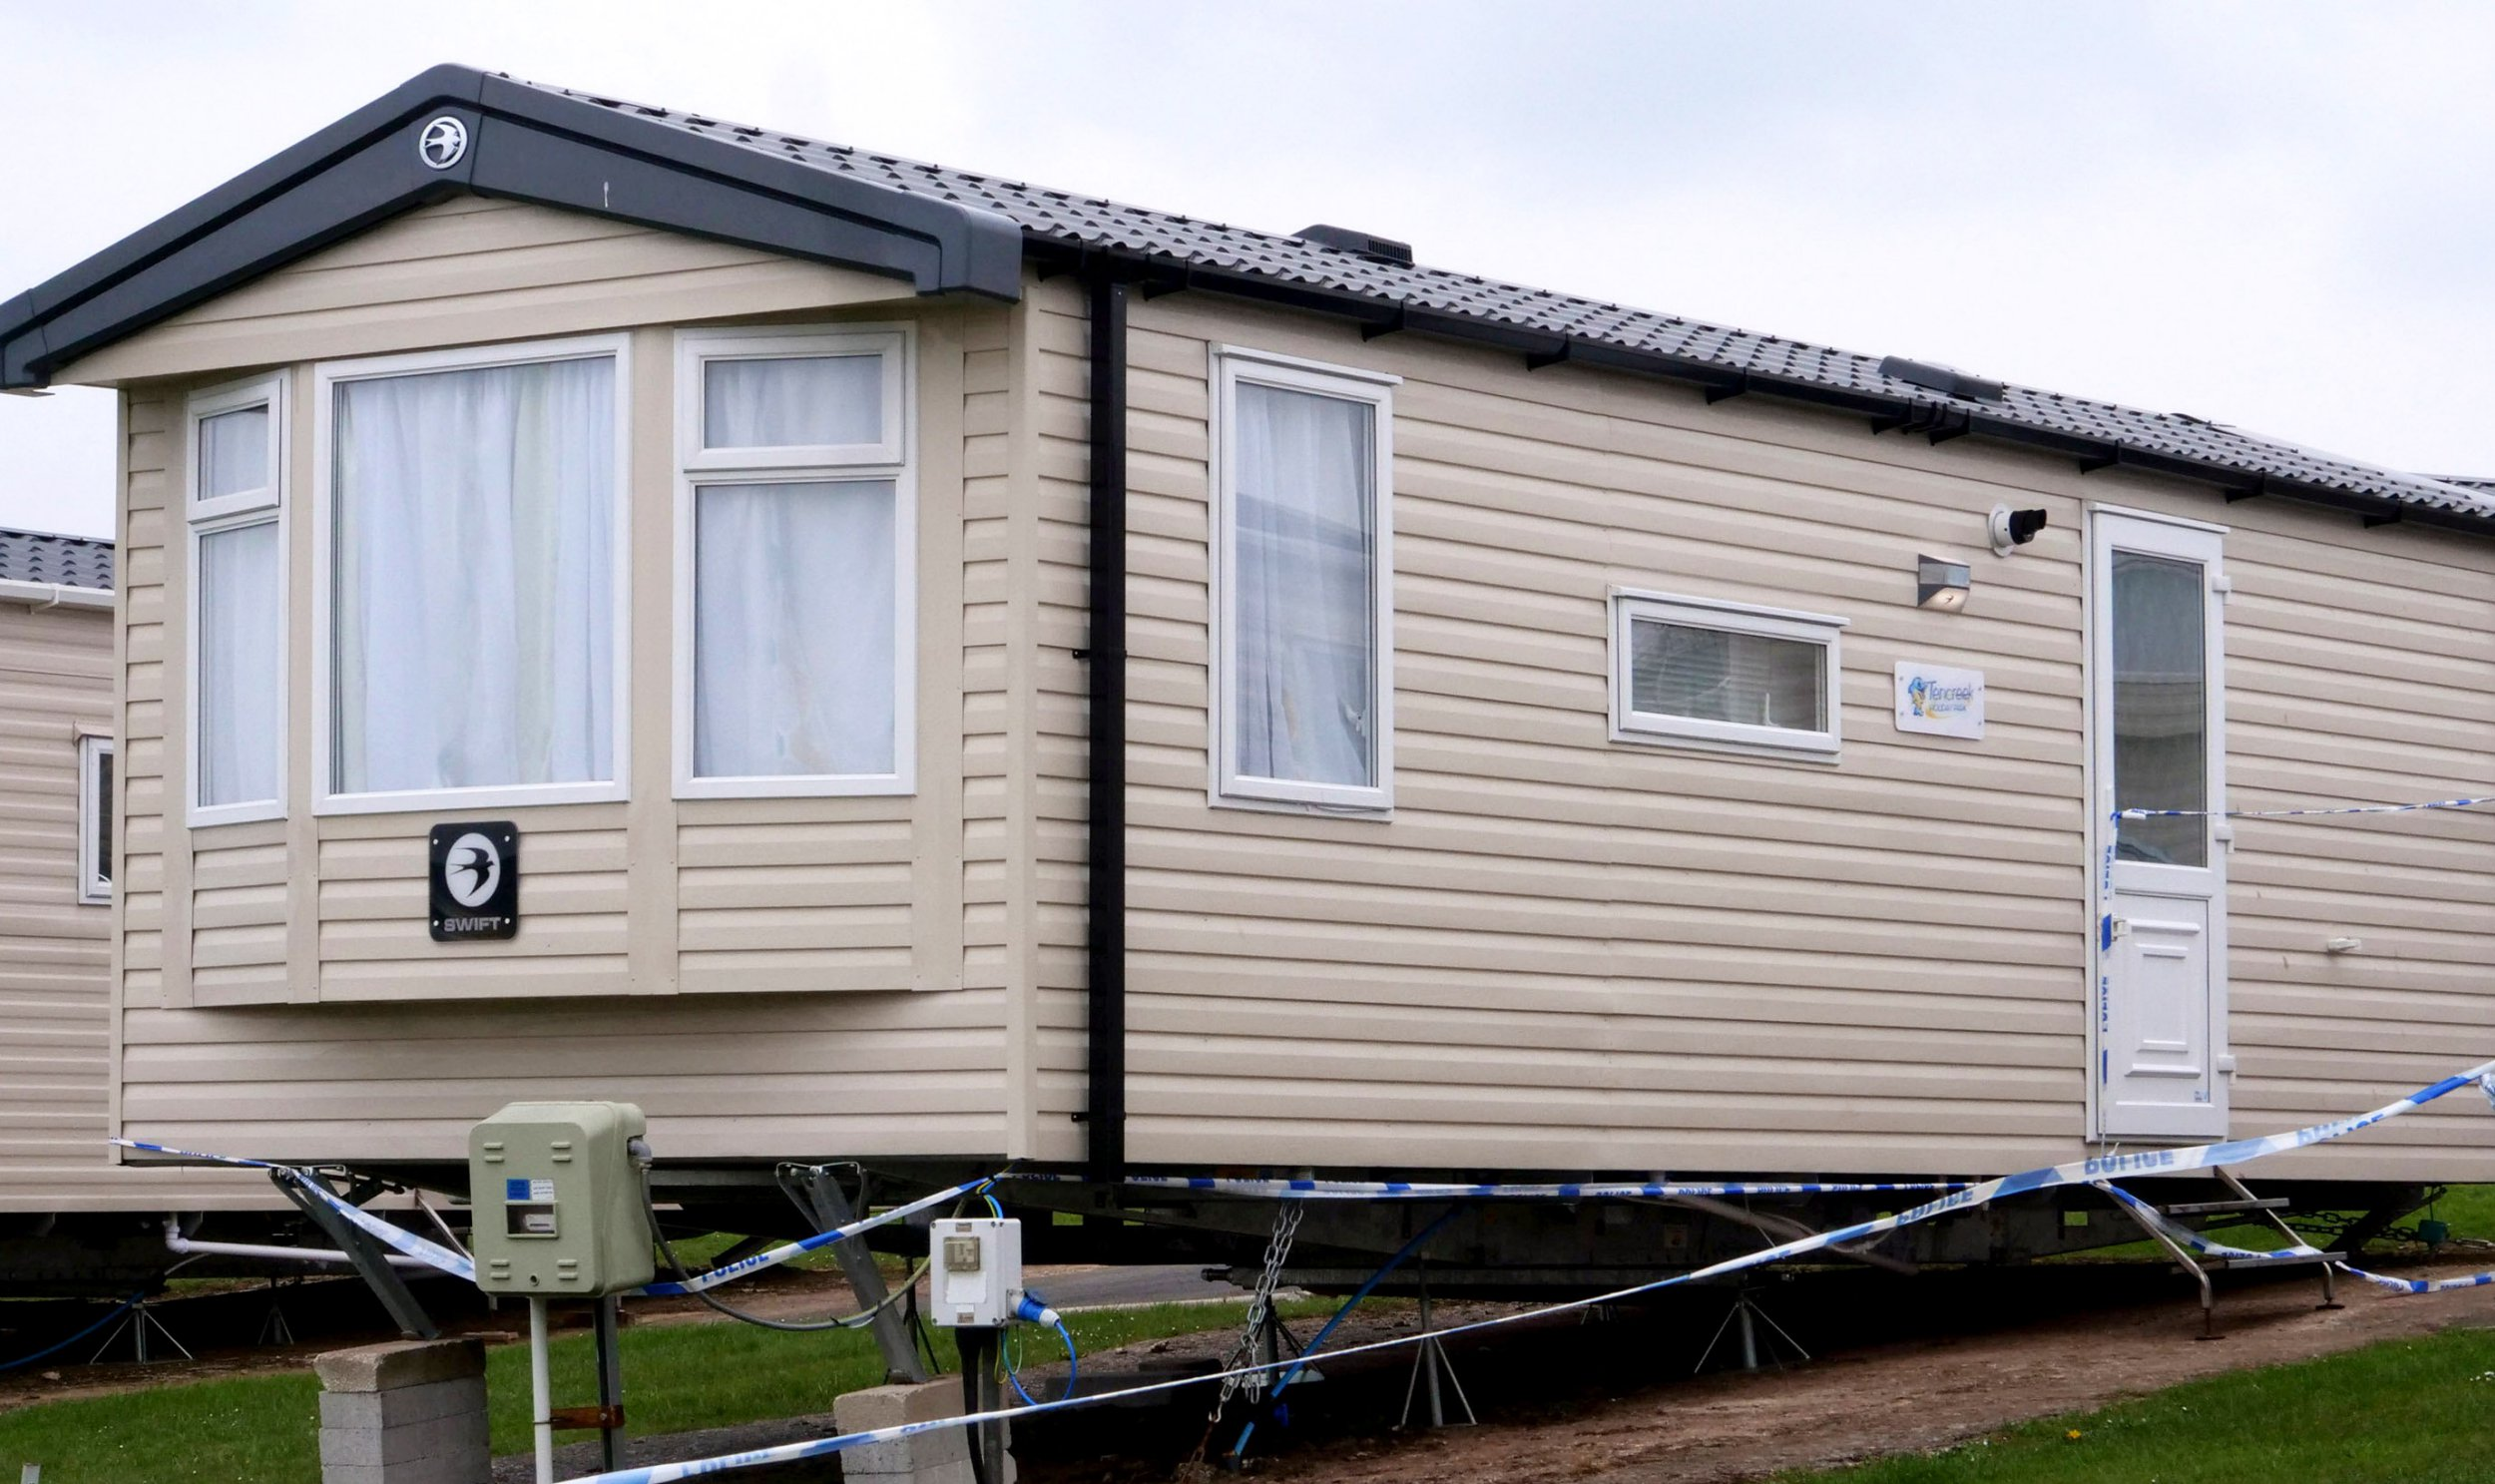 Police tapes cordon off a large area around static caravans at the Tencreek Holiday Park, Looe, Cornwall today, April 14, 2019, where a ten-yer-old boy was tragically killed by a large dog in the early hours of Saturday morning. See SWNS story SWPLdog. Police were called to a caravan at Tencreek Holiday Park in Looe just before 5am on Saturday (13/4) morning, following reports of a 10-year-old boy in an unresponsive state after being attacked by a dog, believed to be a bulldog-type breed. Emergency services attended but tragically the child was pronounced deceased at the scene. The boy?s next of kin are aware and are being supported by police officers. Following this incident, searches were undertaken to locate the dog and its owner. Police arrested a 28-year-old woman in Saltash just after 8am on the same morning in connection to this matter. The dog was also located which has since been transferred to kennels.